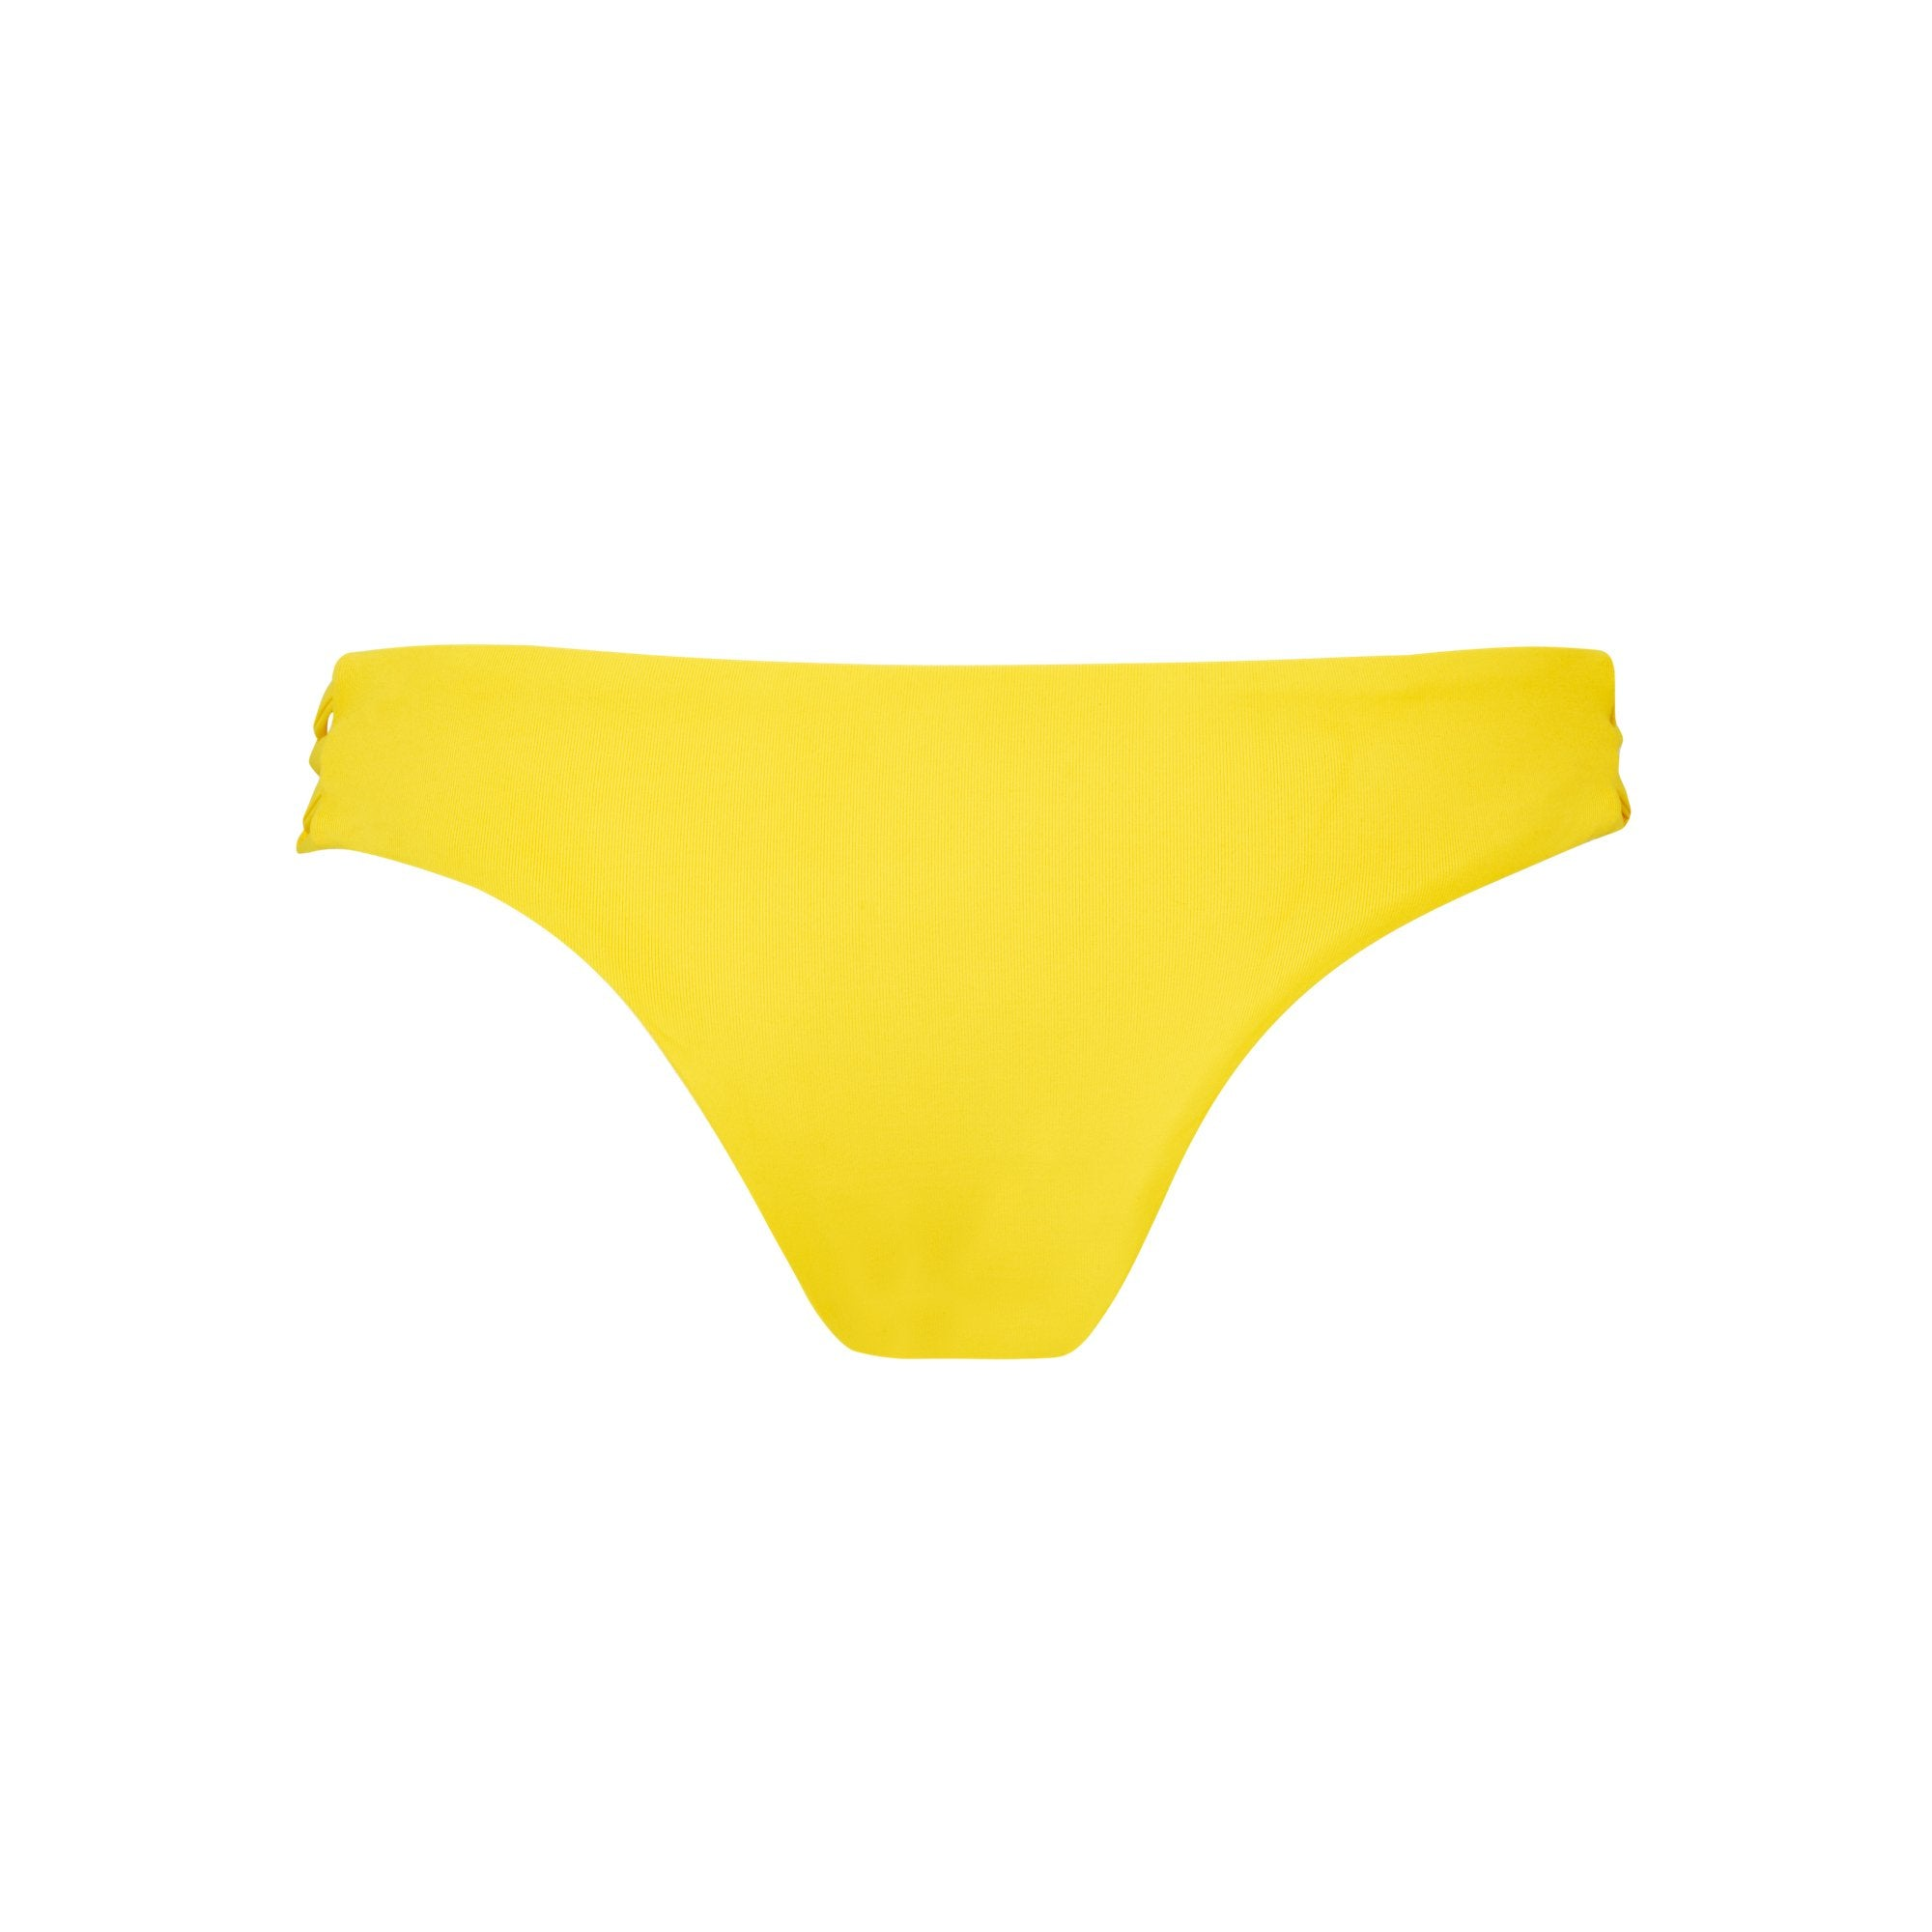 Tangled Bikini Bottom in Banana by Tuhkana Swimwear